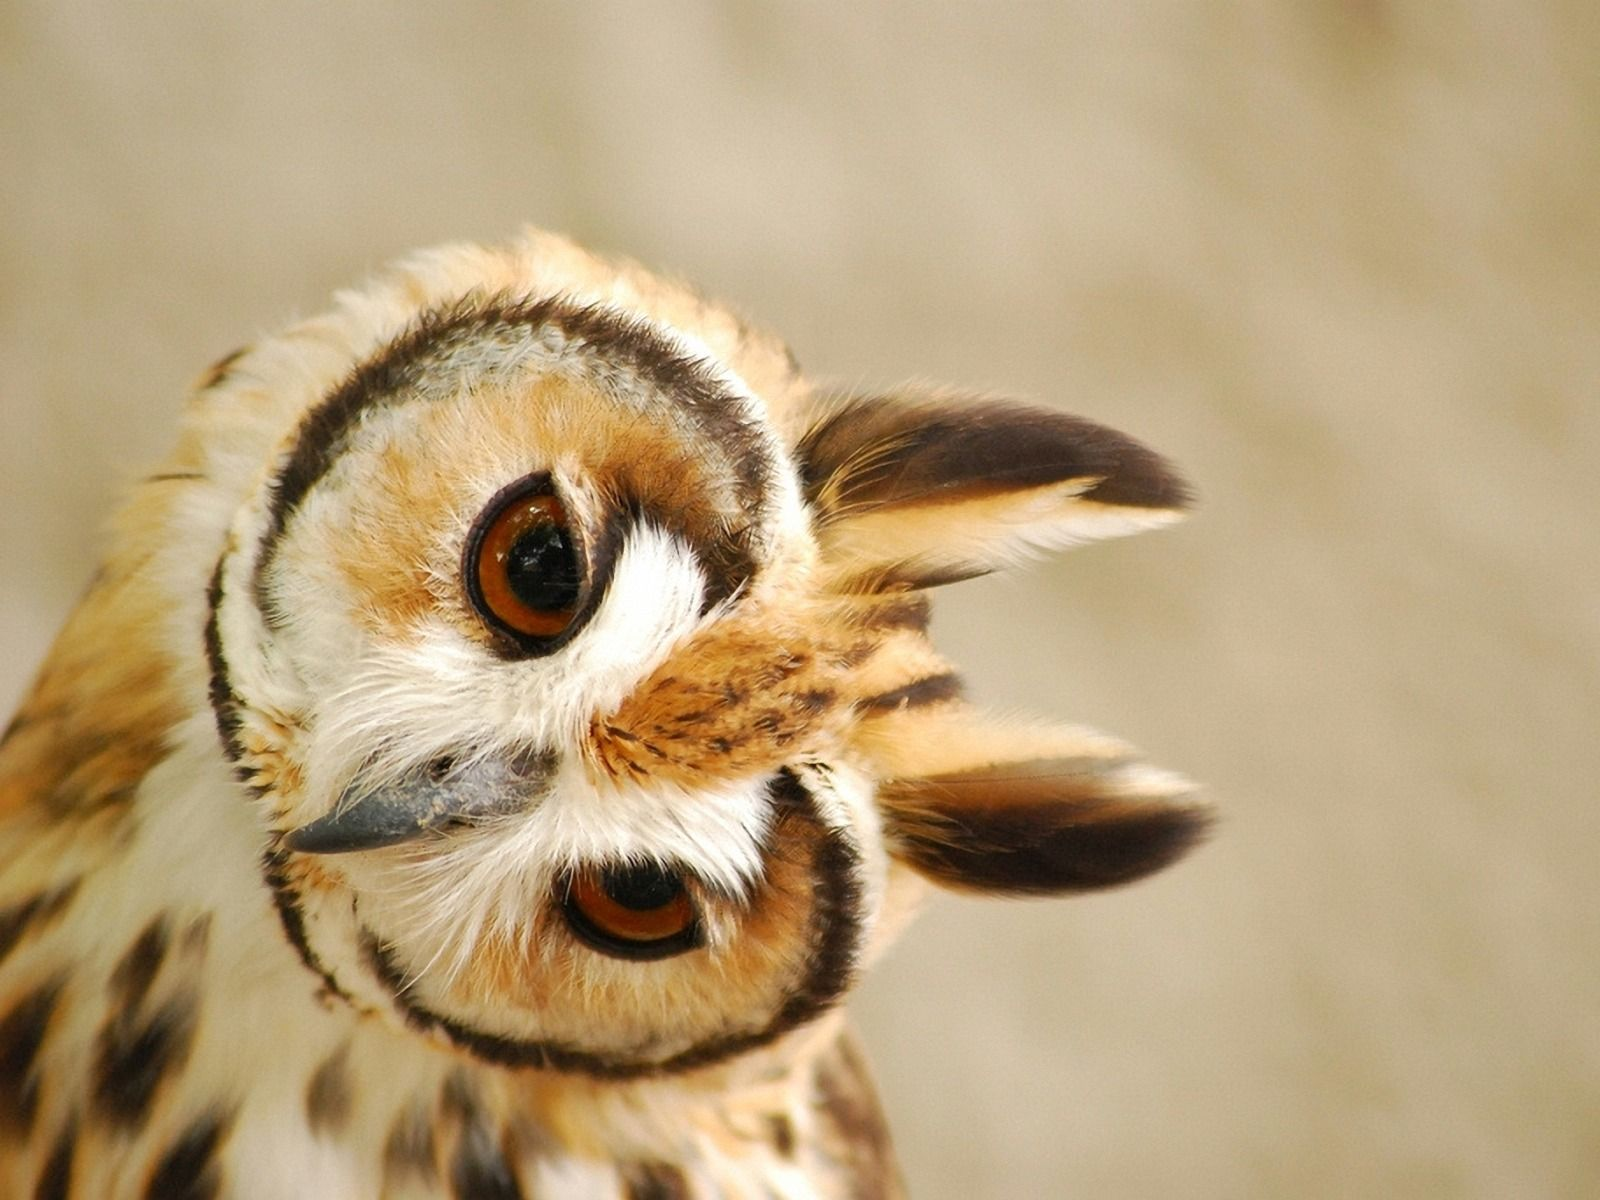 Ordinaire Cute Owl Pictures Wallpaper Desktop Background 1600x1200PX ~ Wallpaper Cute  Owl #60430 · Morning CoffeeFunny ...